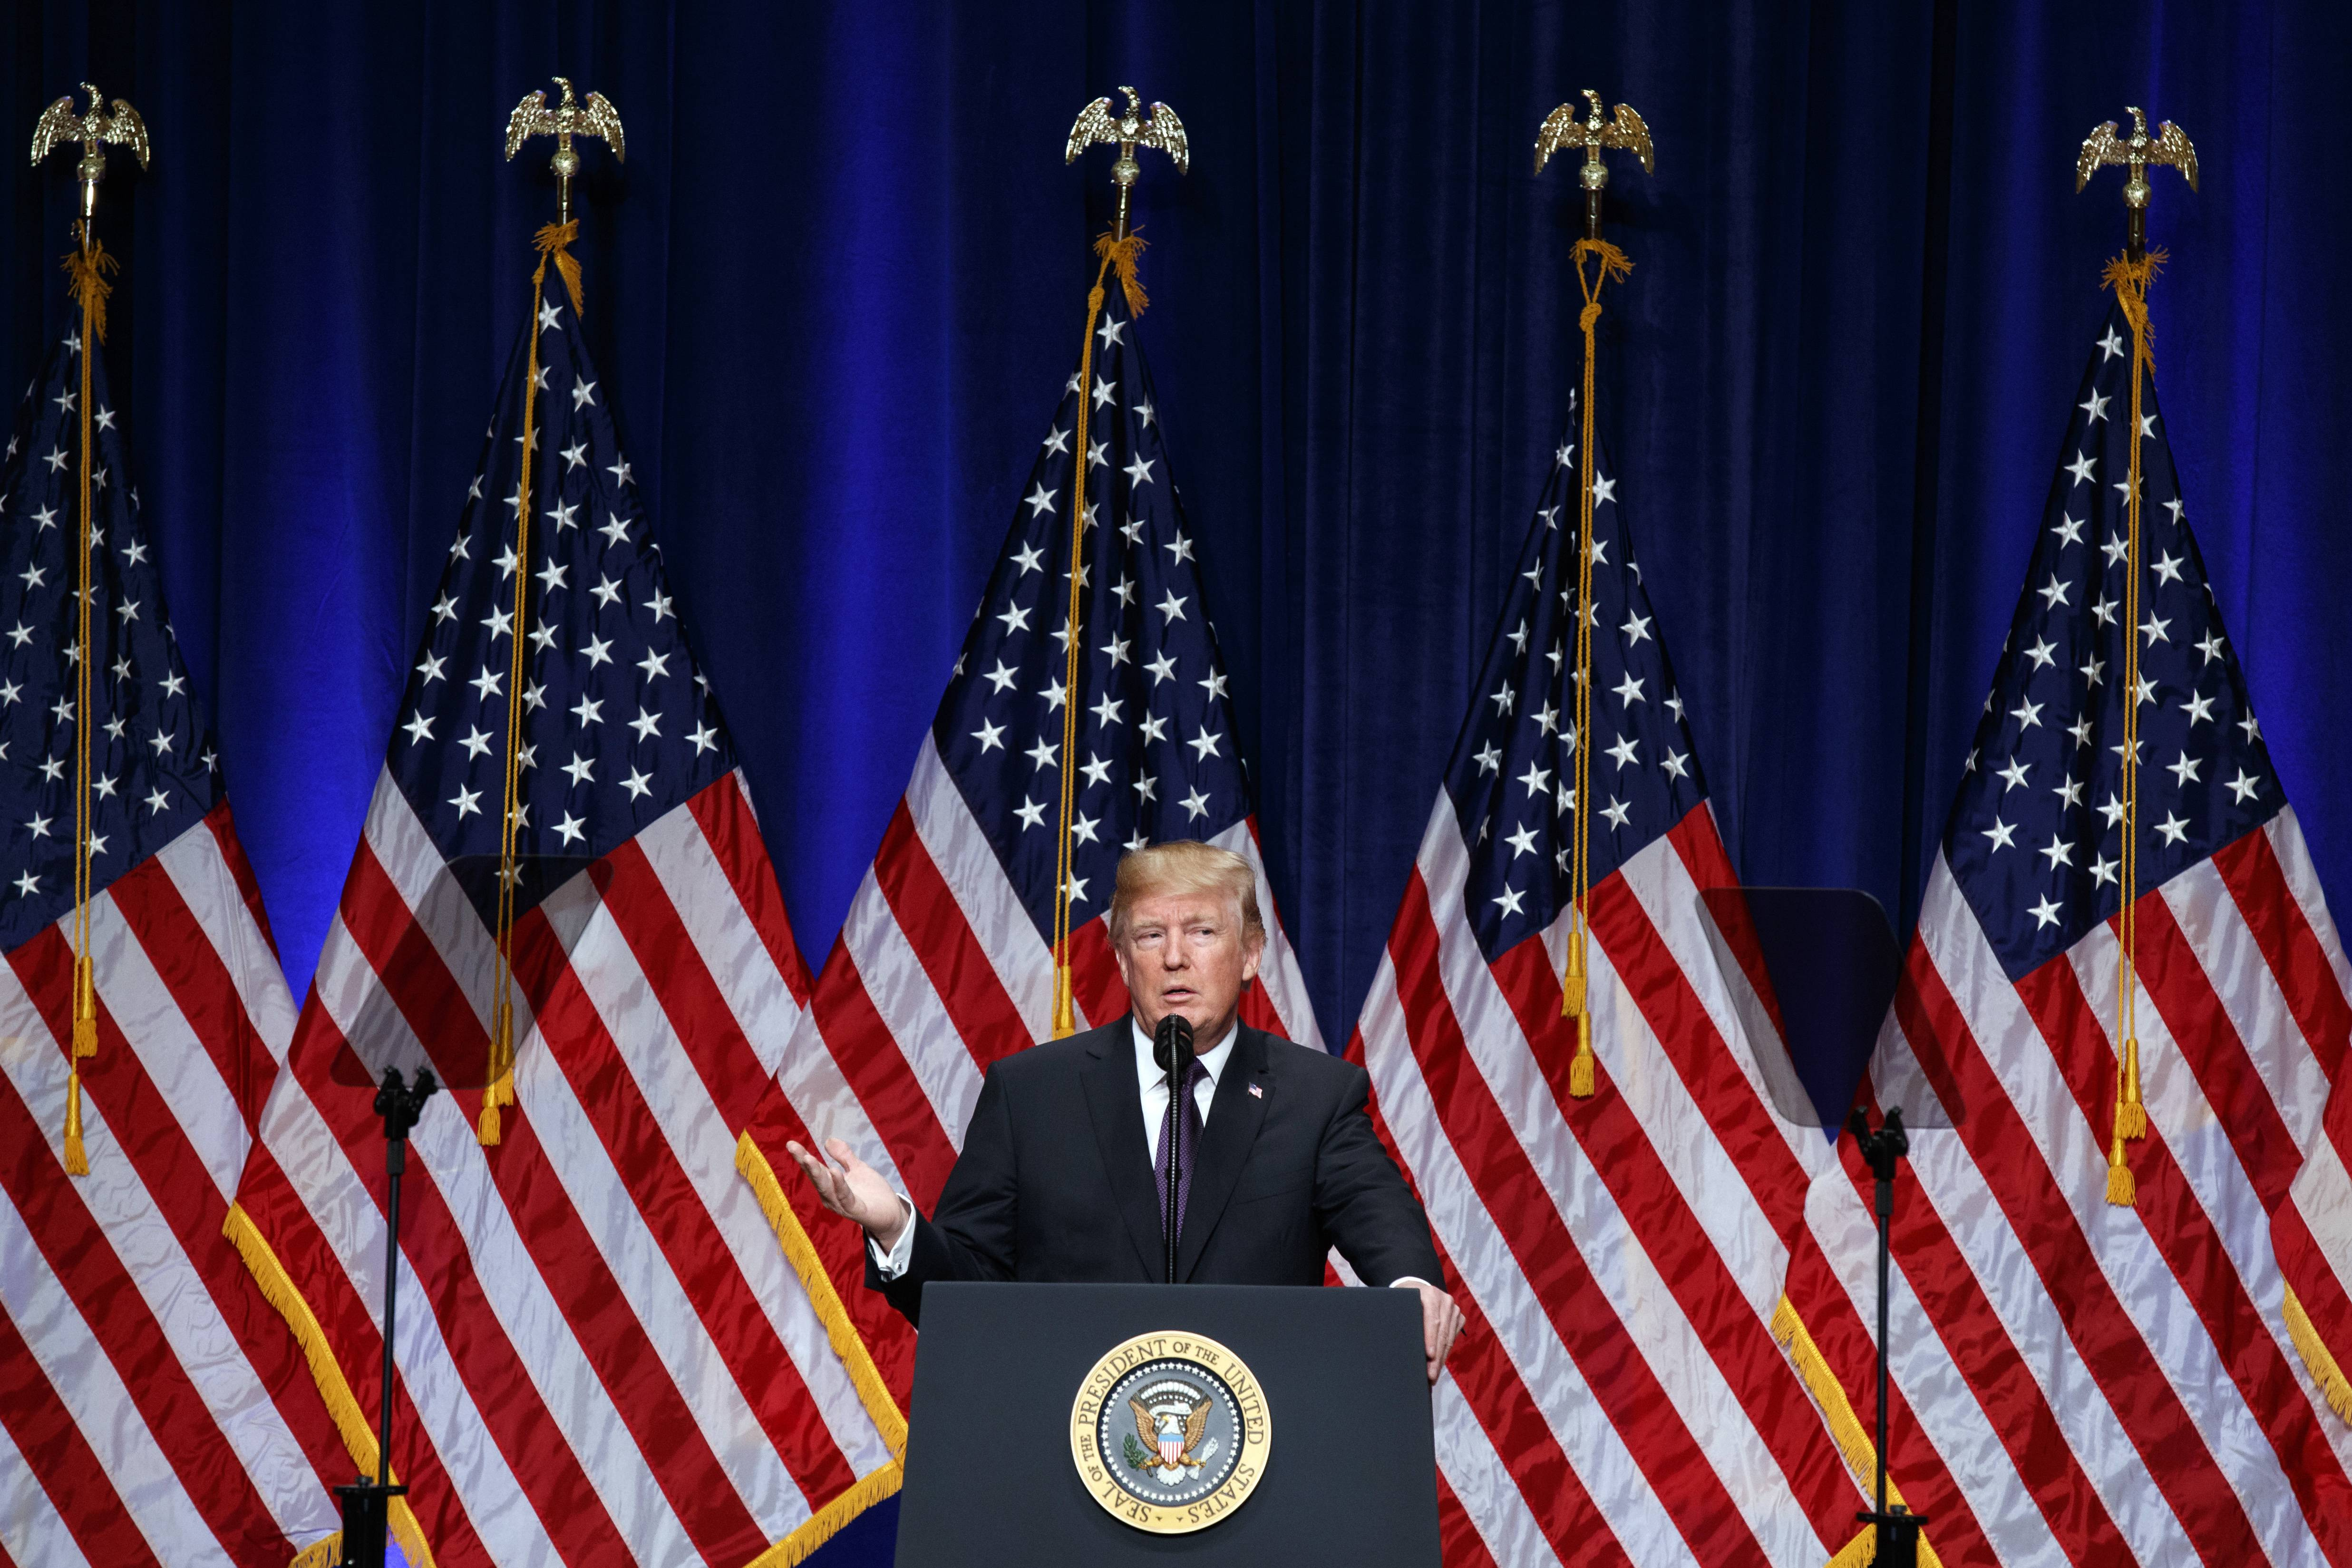 President Donald Trump speaks on his national security strategy, Monday, Dec. 18, 2017, in Washington. (AP Photo/Evan Vucci)